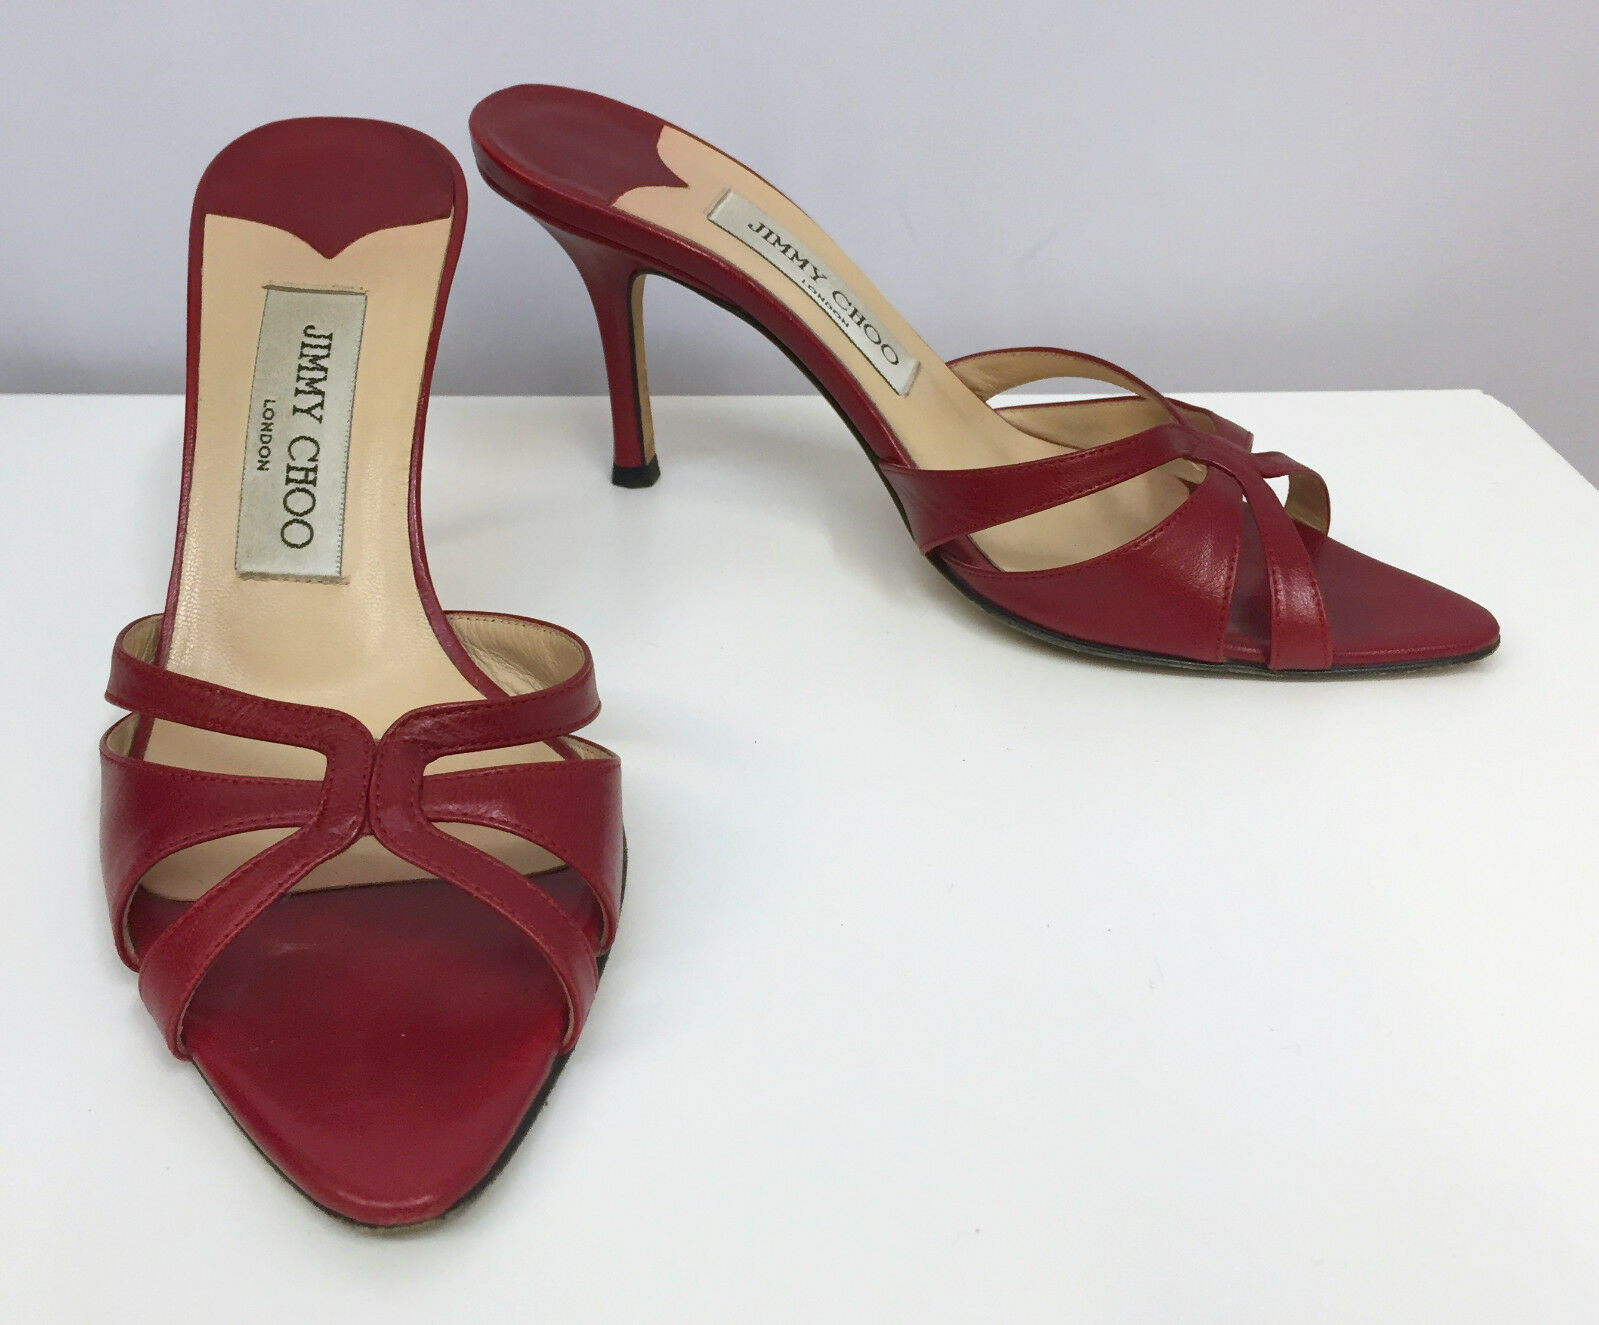 JIMMY CHOO SANDALS SHOES RED WINE LEATHER VERY 36 SEXY EXCELLENT CONDITION SIZE 36 VERY 37026f